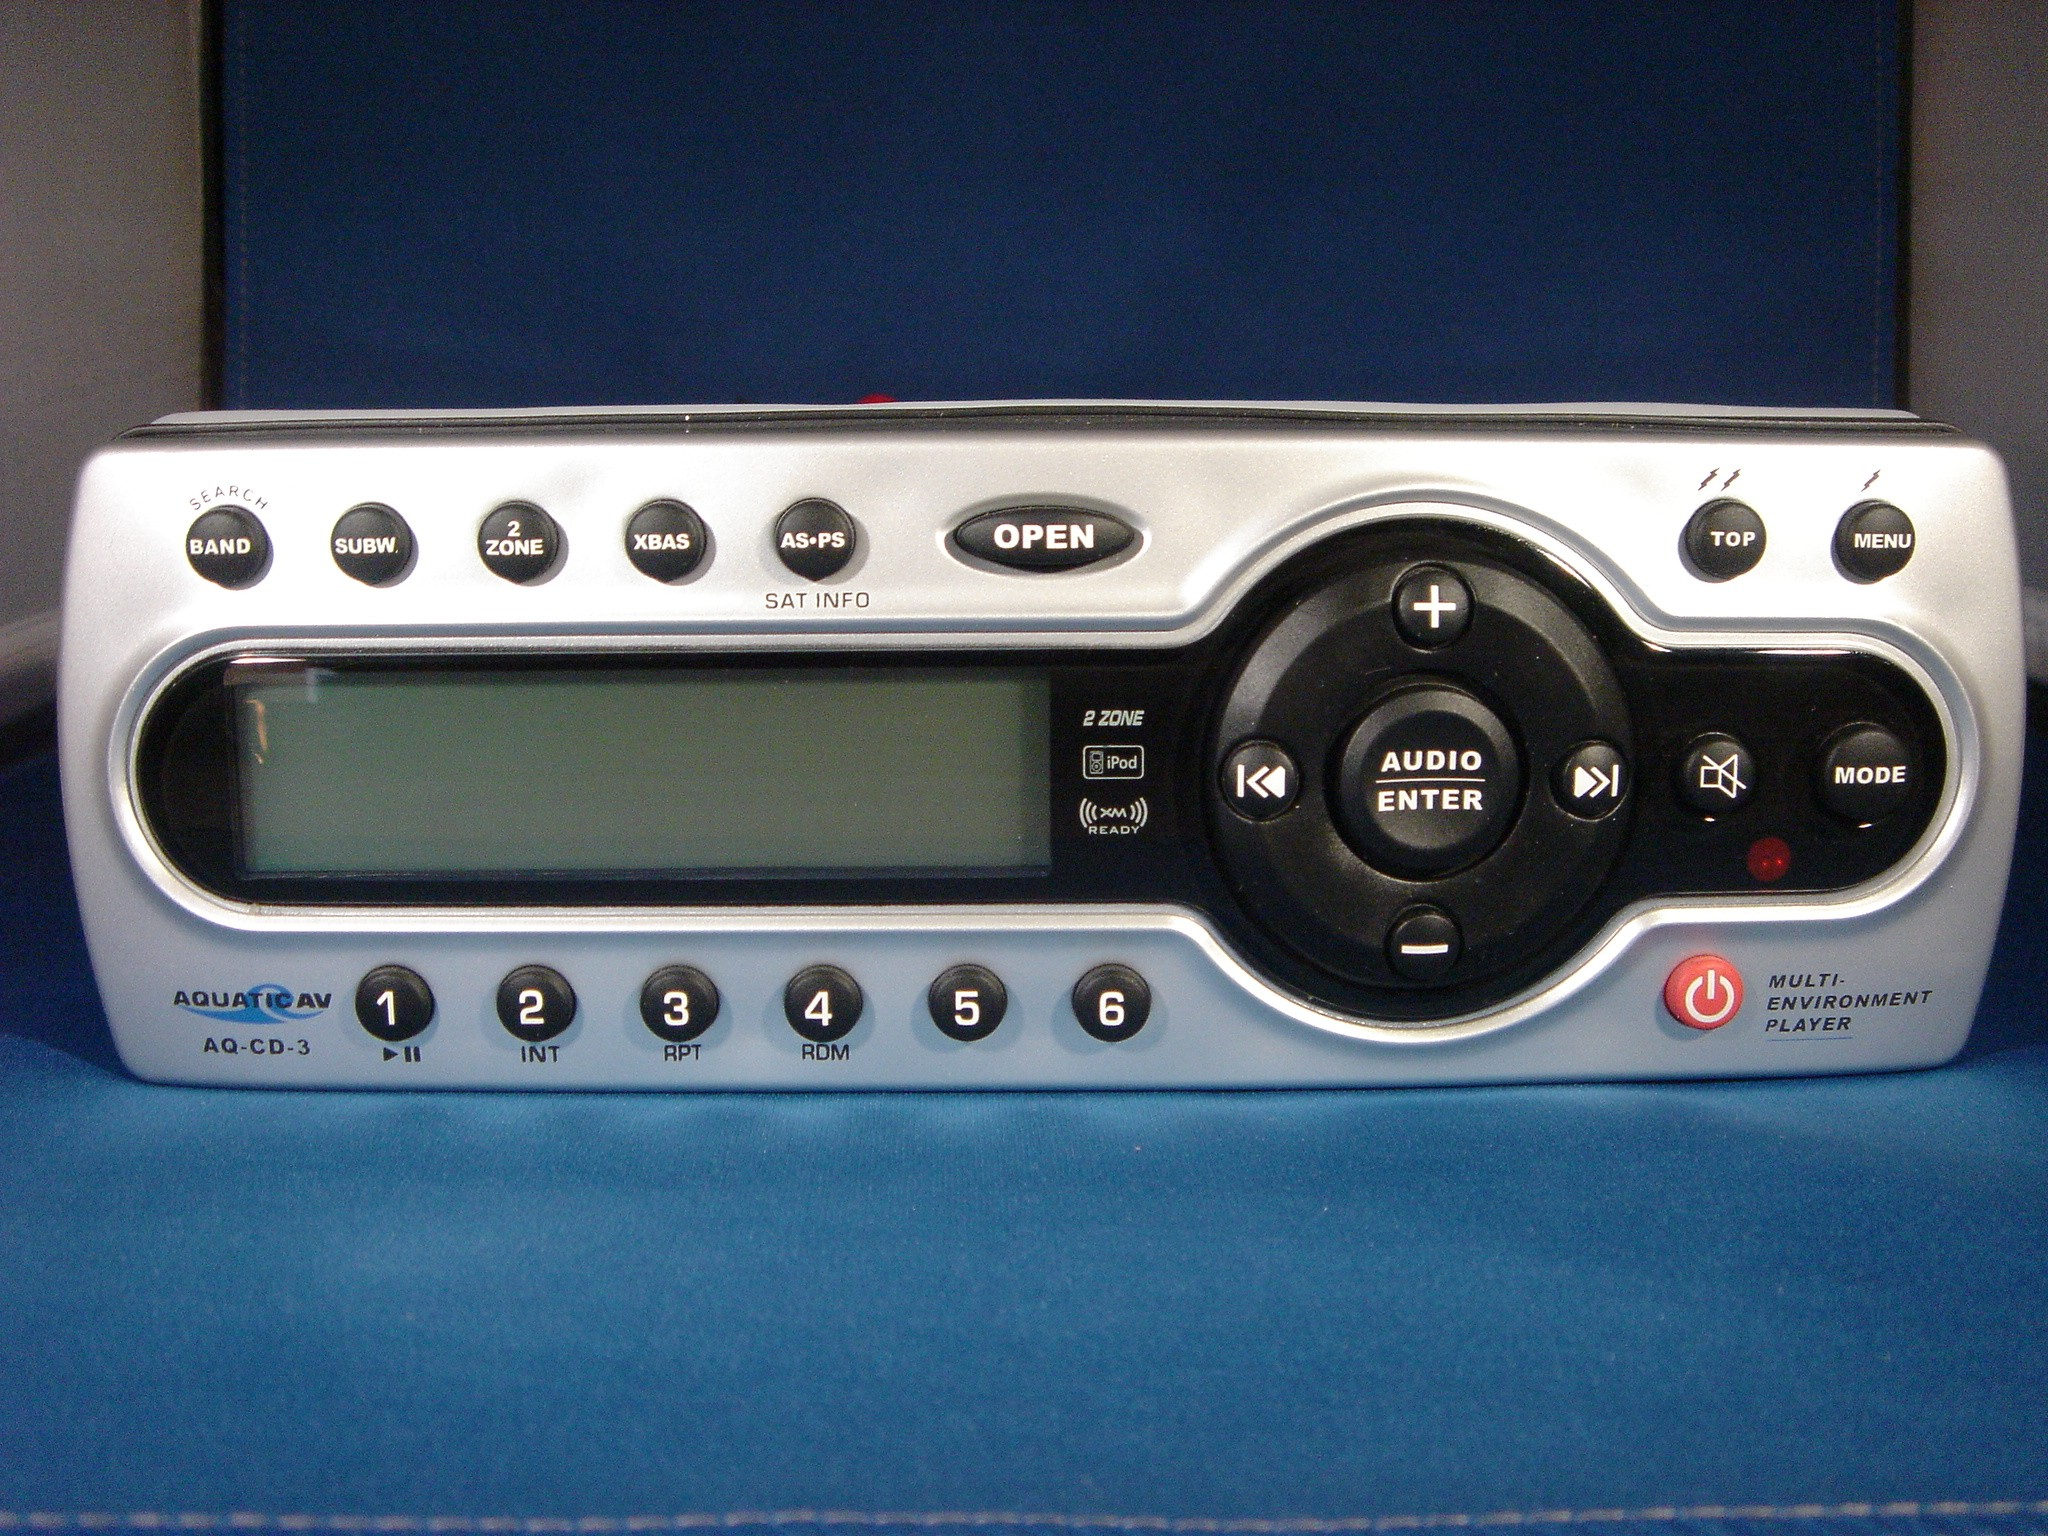 2007+ J-300 Series AM/FM/CD Stereo